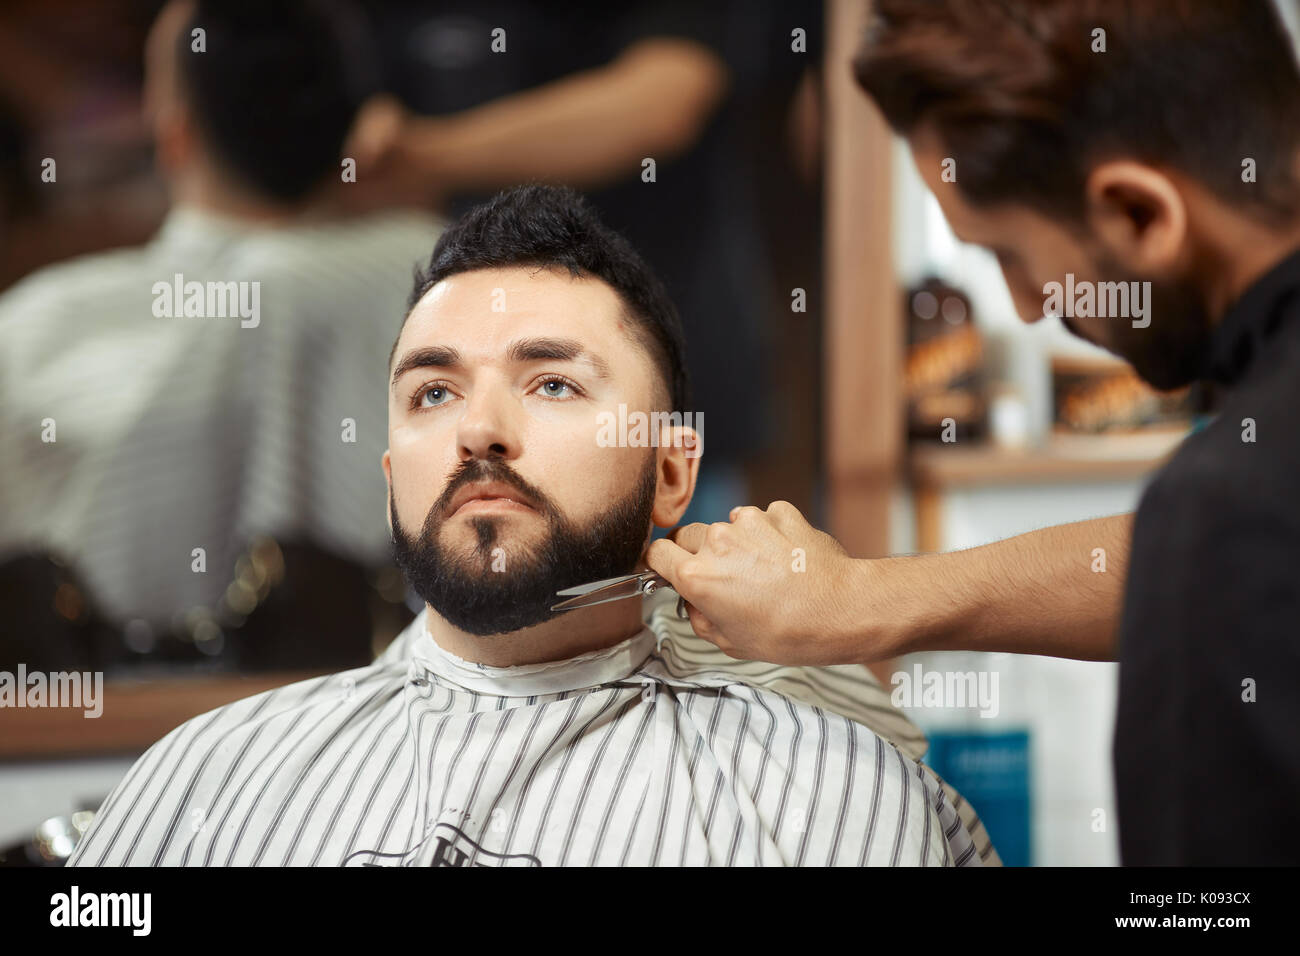 Barber grooming man in chair - Stock Image